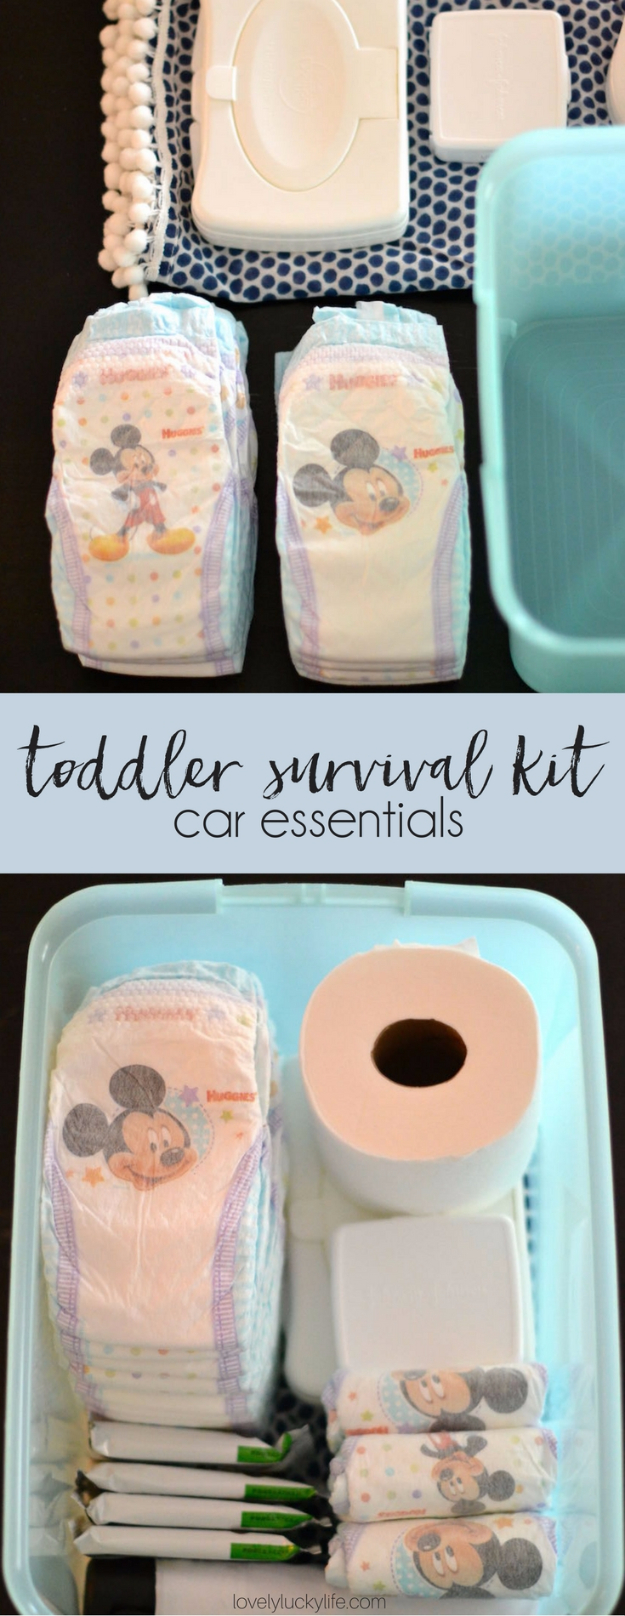 DIY Car Accessories and Ideas for Cars - Toddler Survival Kit Car Essentials - Interior and Exterior, Seats, Mirror, Seat Covers, Storage, Carpet and Window Cleaners and Products - Decor, Keys and Iphone and Tablet Holders - DIY Projects and Crafts for Women and Men http://diyjoy.com/diy-ideas-car